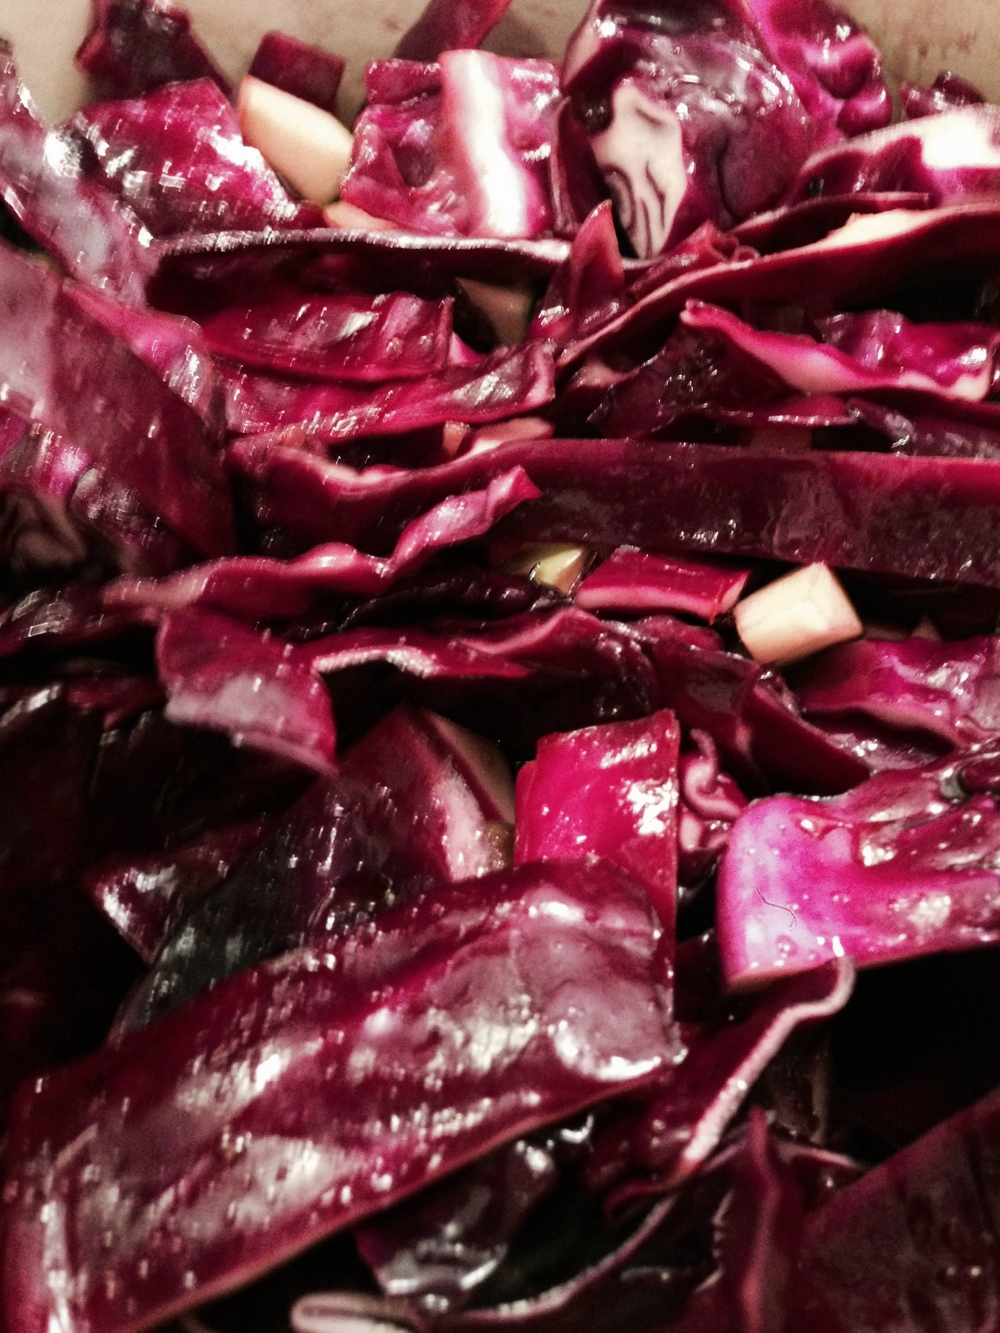 Cooking the red cabbage